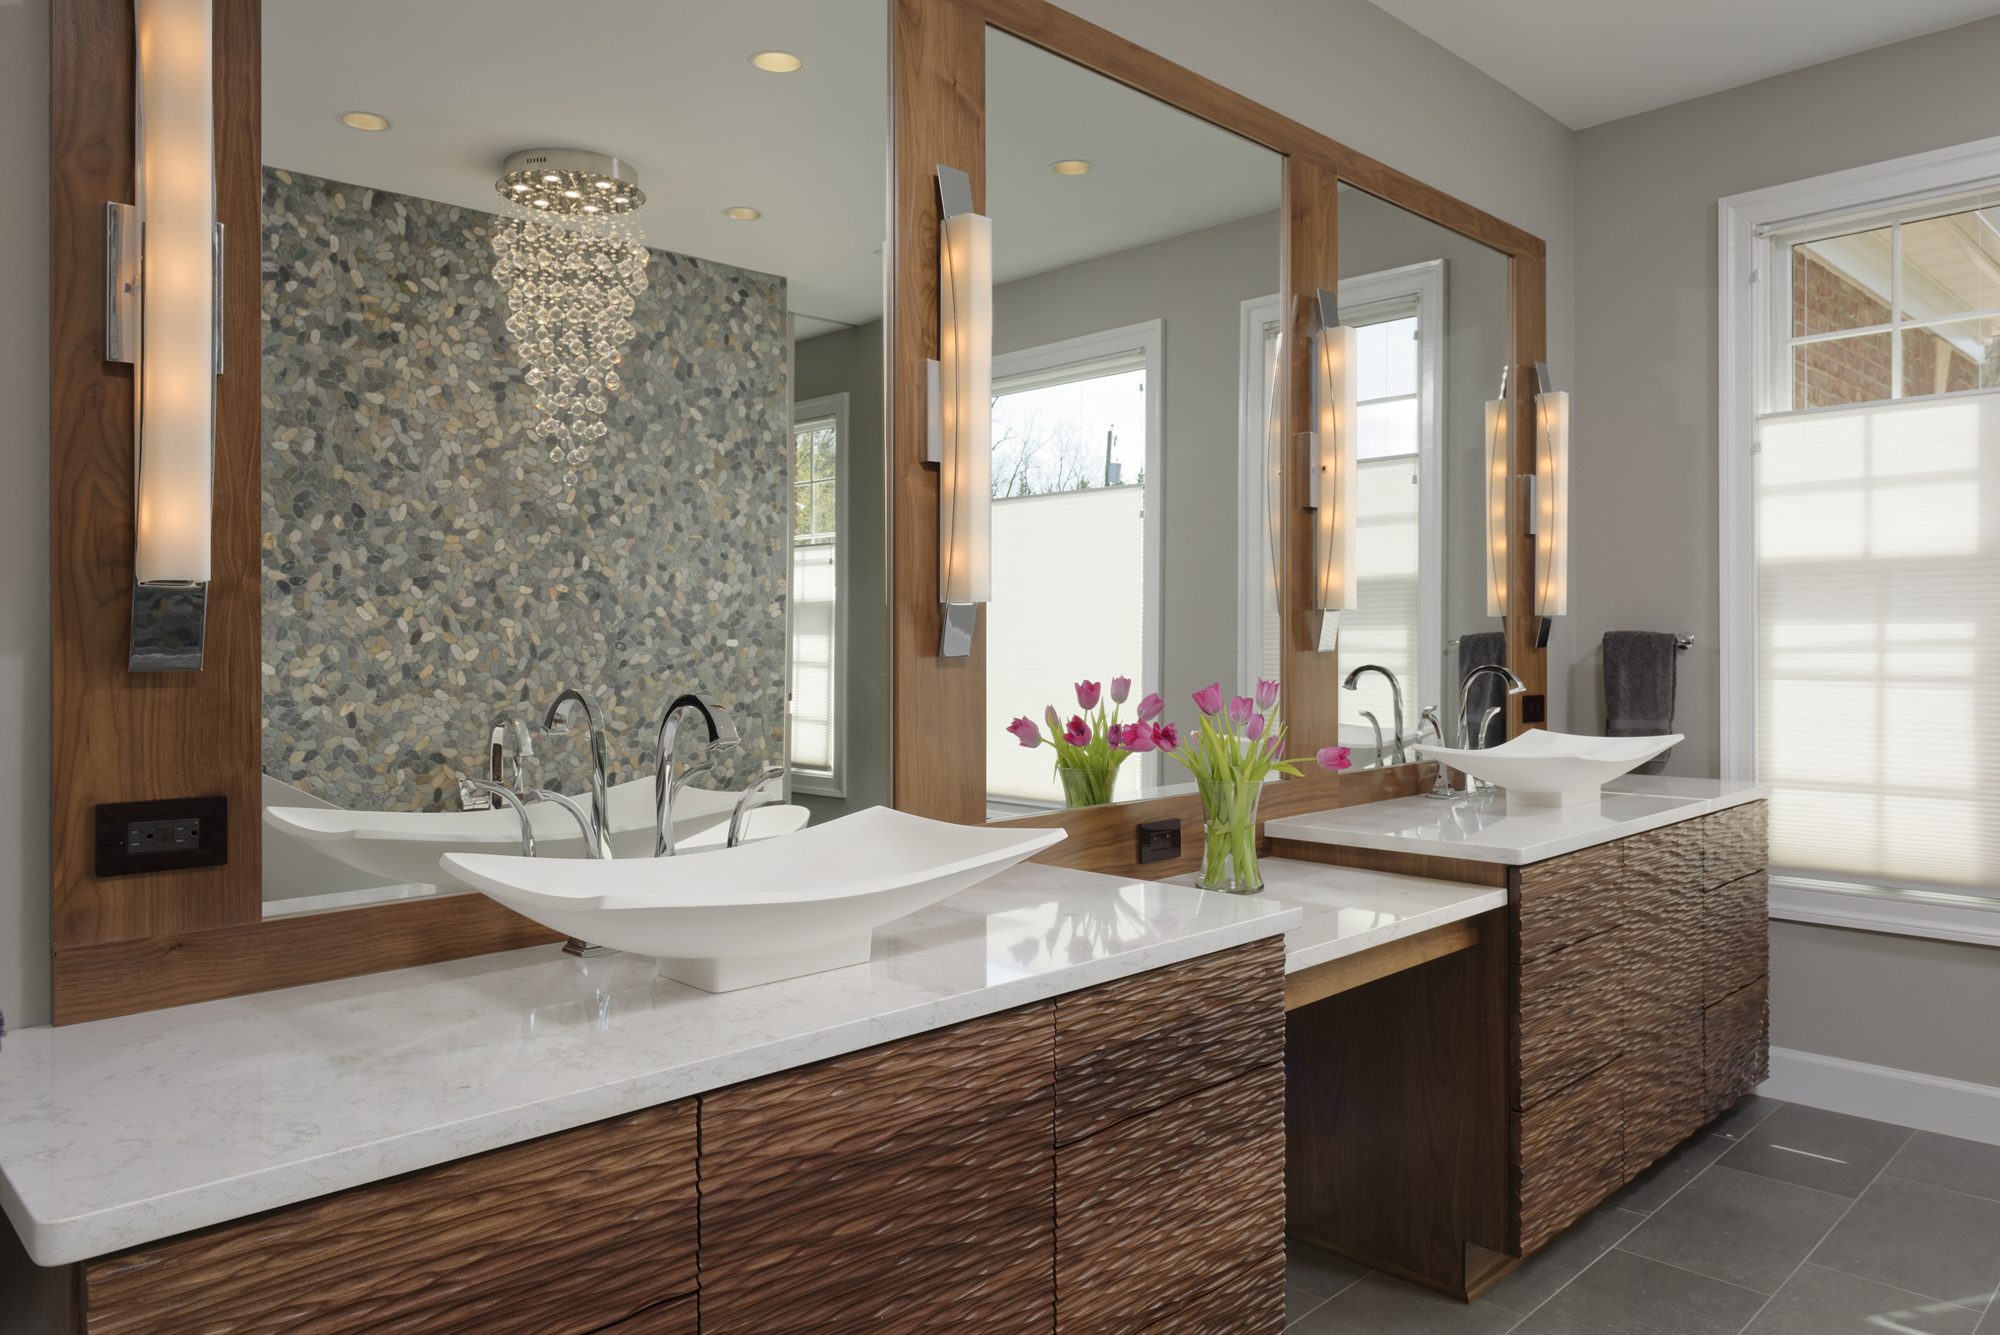 Master Suite And Bathroom Renovation In Great Falls Va